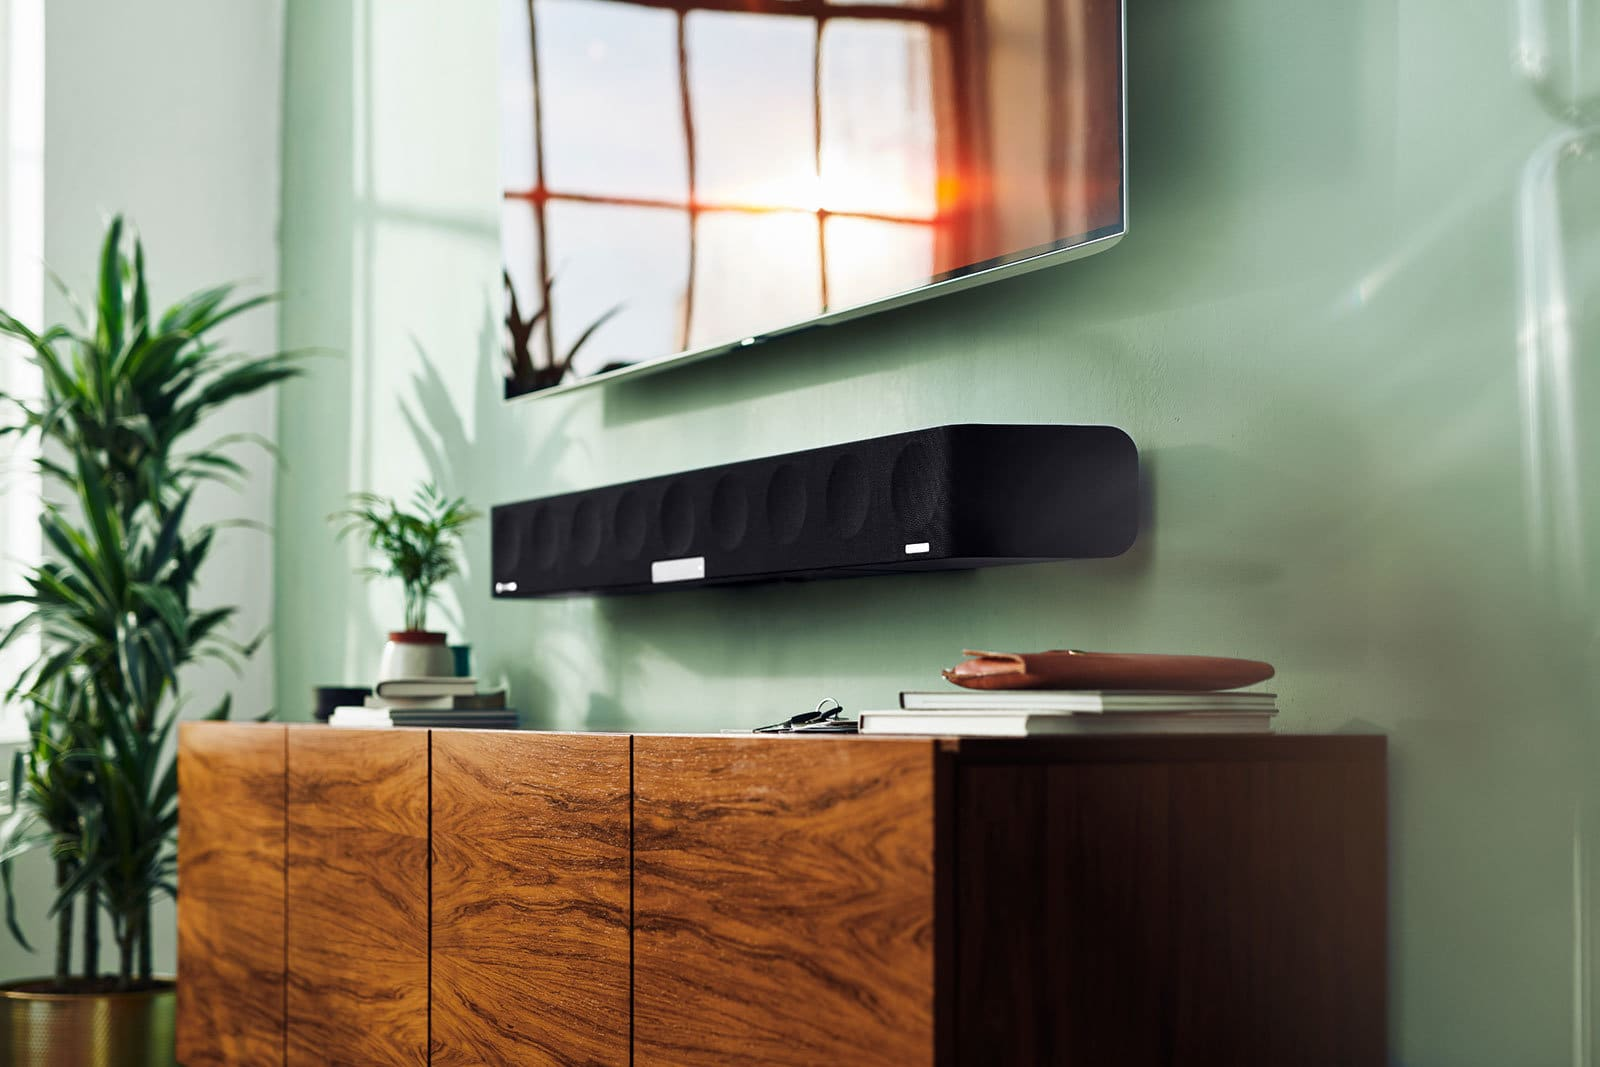 Sennheiser's Ambeo 3D audio soundbar goes on sale in May for $2,499